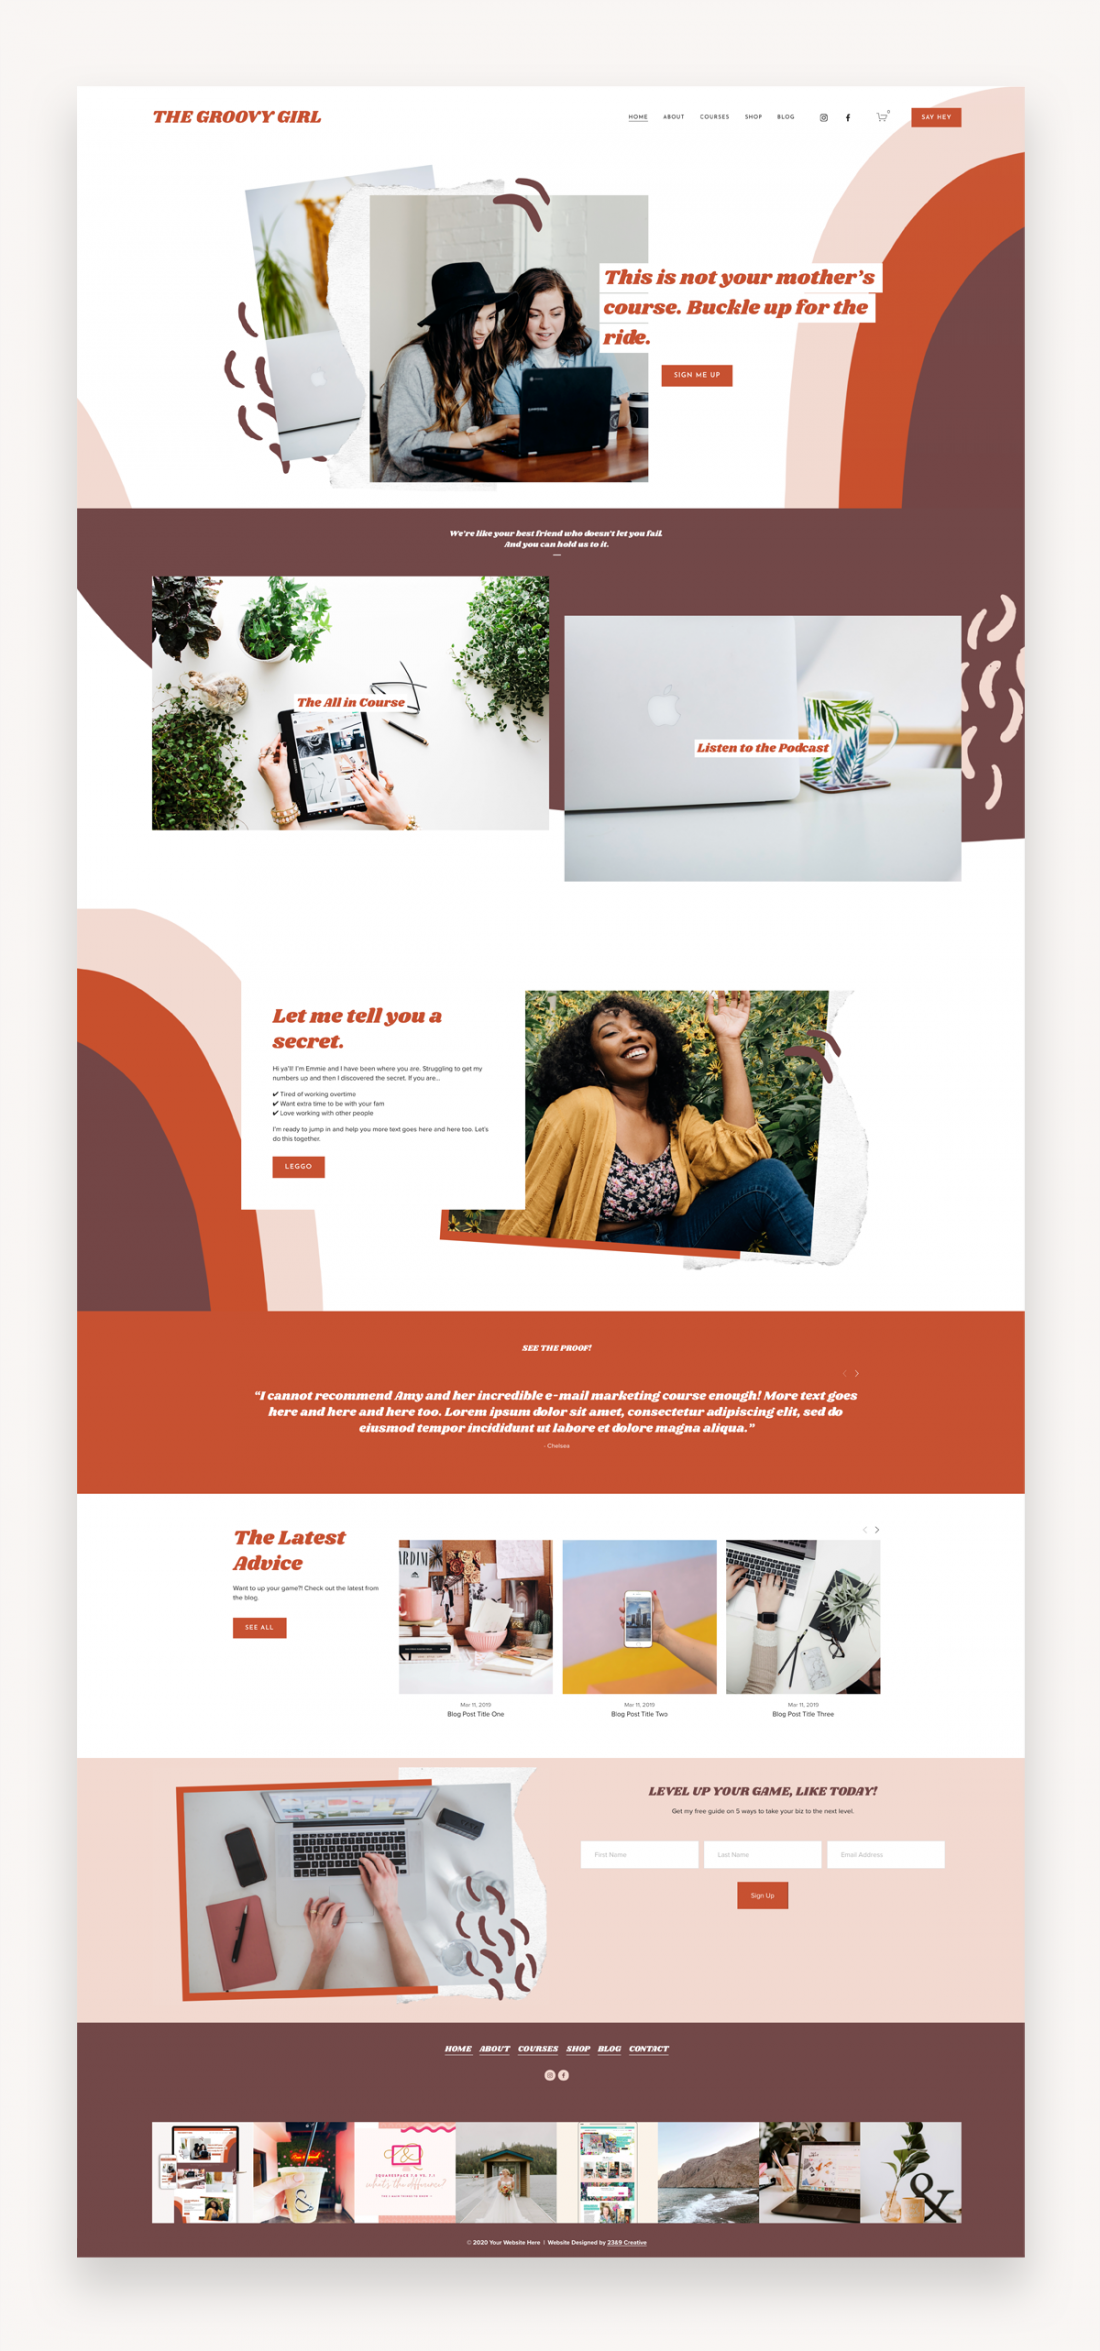 Groovy Girl Squarespace Template Market Wp Themes In 2020 Squarespace Templates Website Design Inspiration Web Design Inspiration